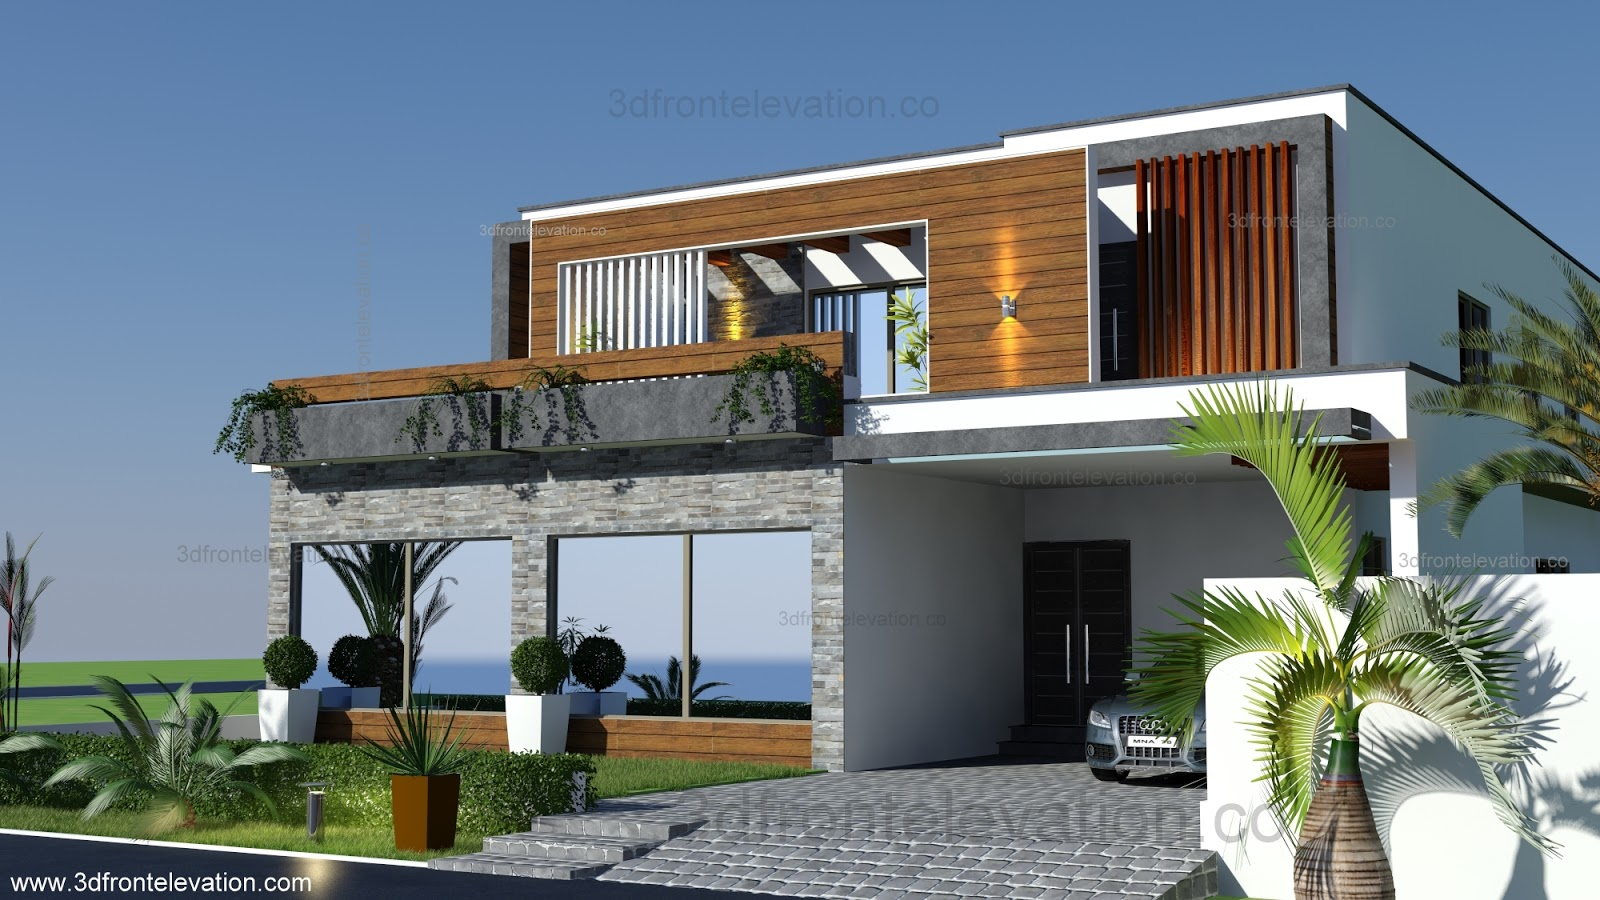 3d%2Bfront%2Belevation%2Brenovation - Download Unique Small House Design In Pakistan PNG